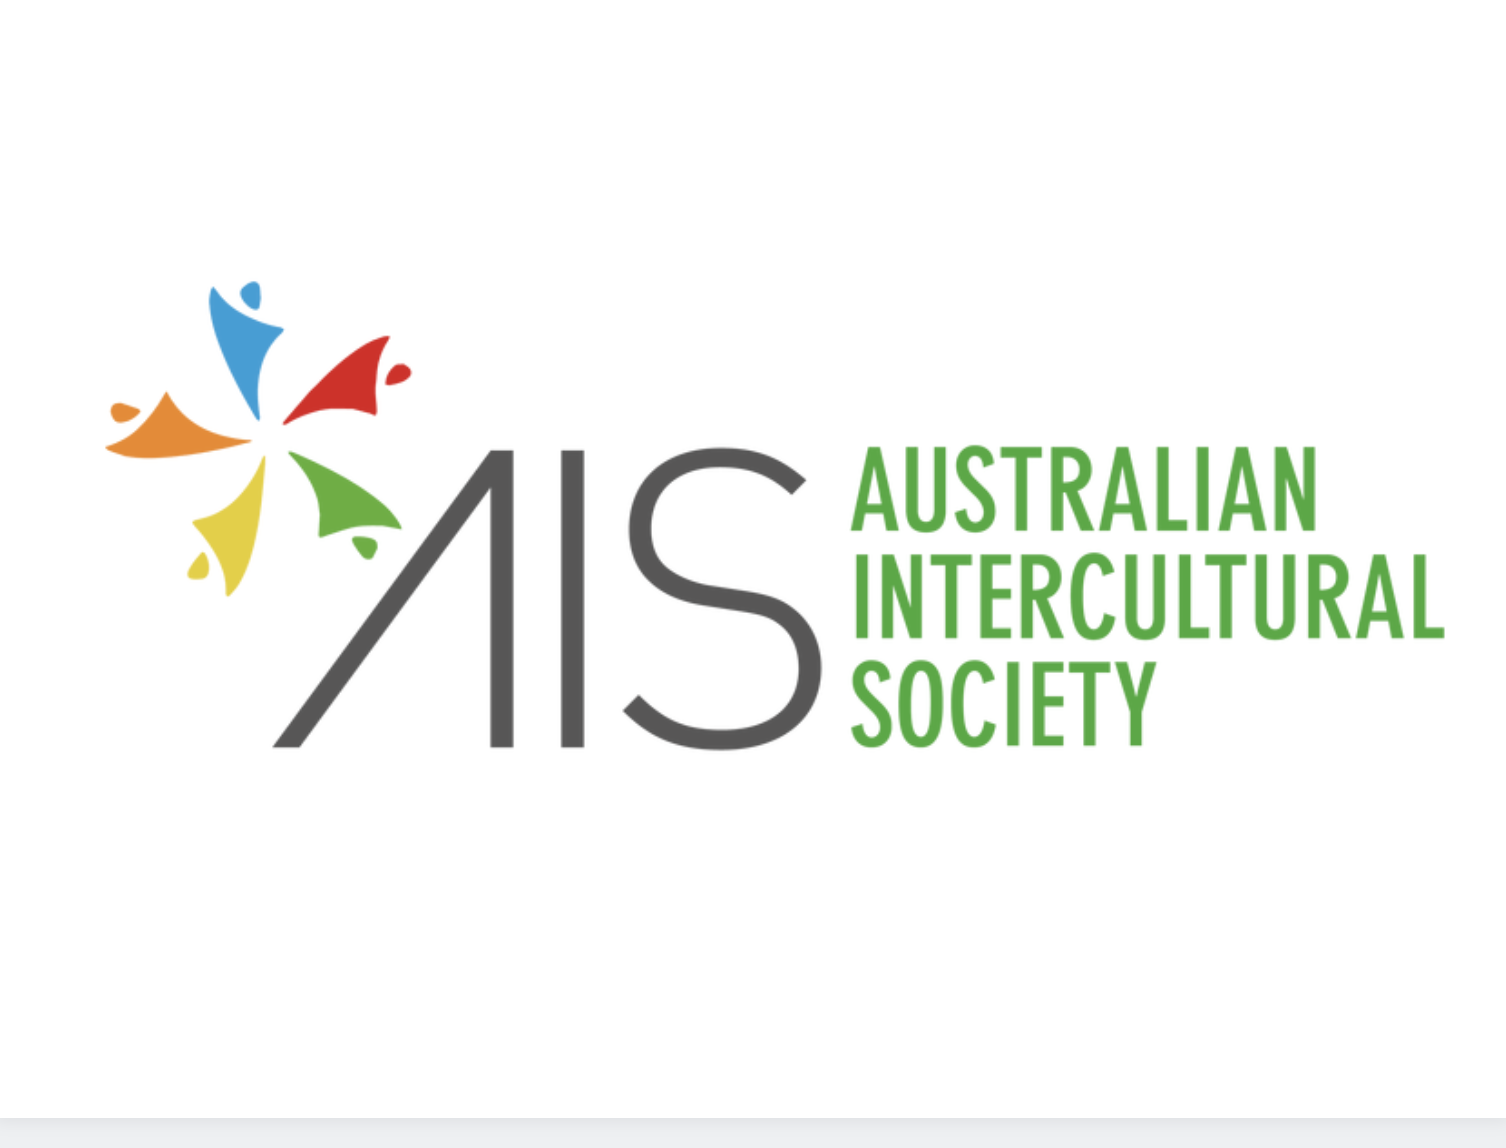 Australian Intercultural Society